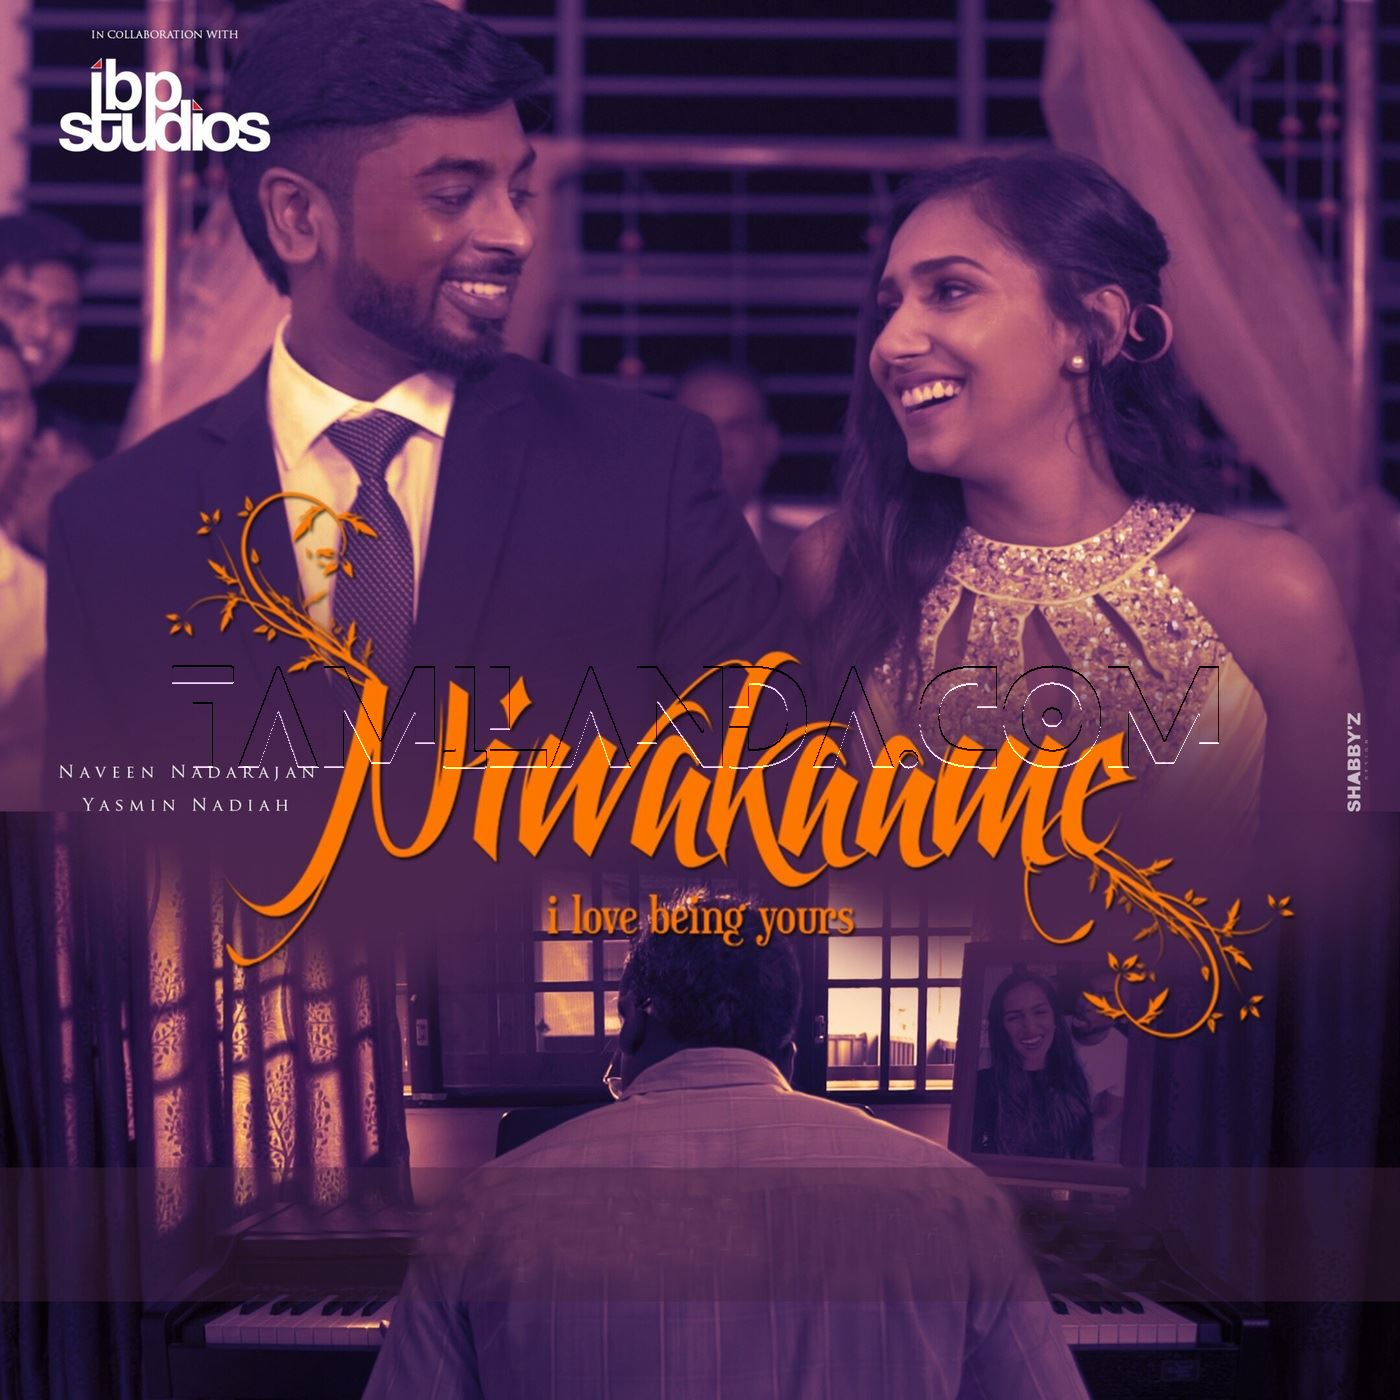 Niwakkame – Single FLAC Song (2018)